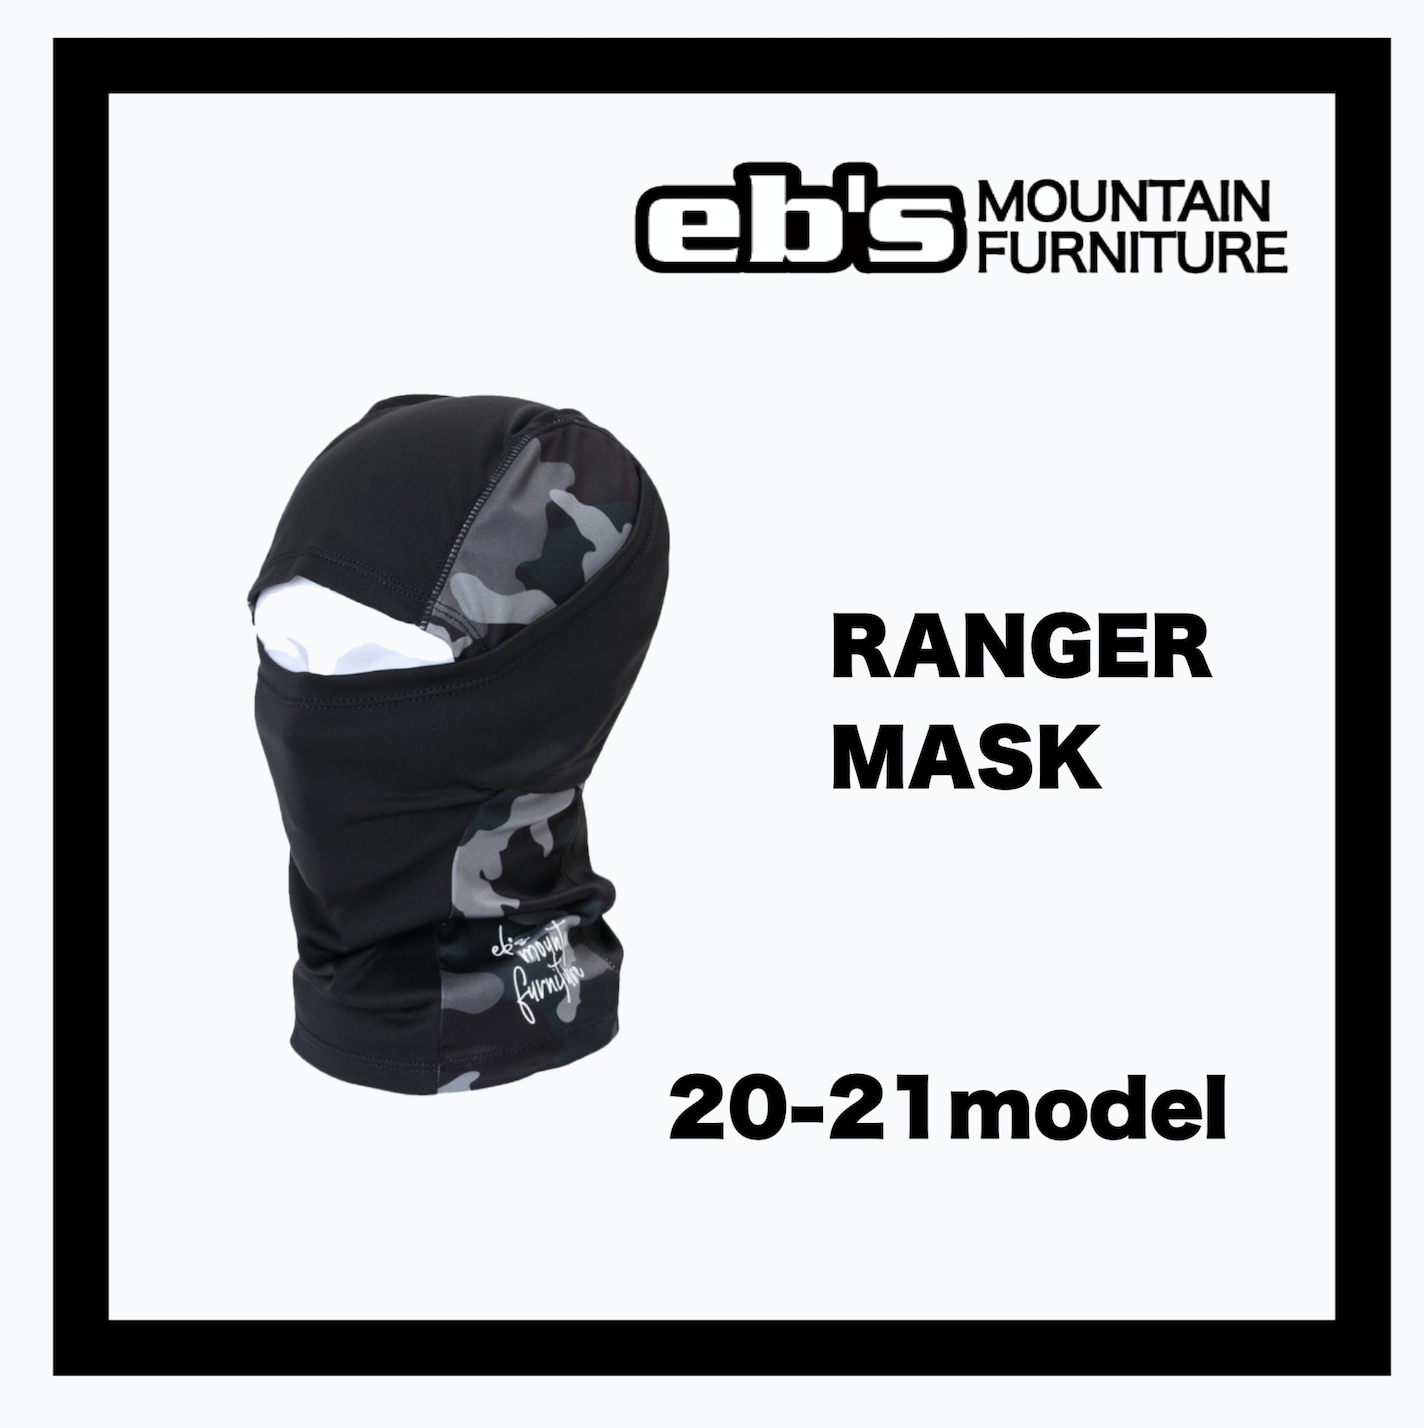 <img class='new_mark_img1' src='//img.shop-pro.jp/img/new/icons14.gif' style='border:none;display:inline;margin:0px;padding:0px;width:auto;' />eb's【 RANGER MASK 】